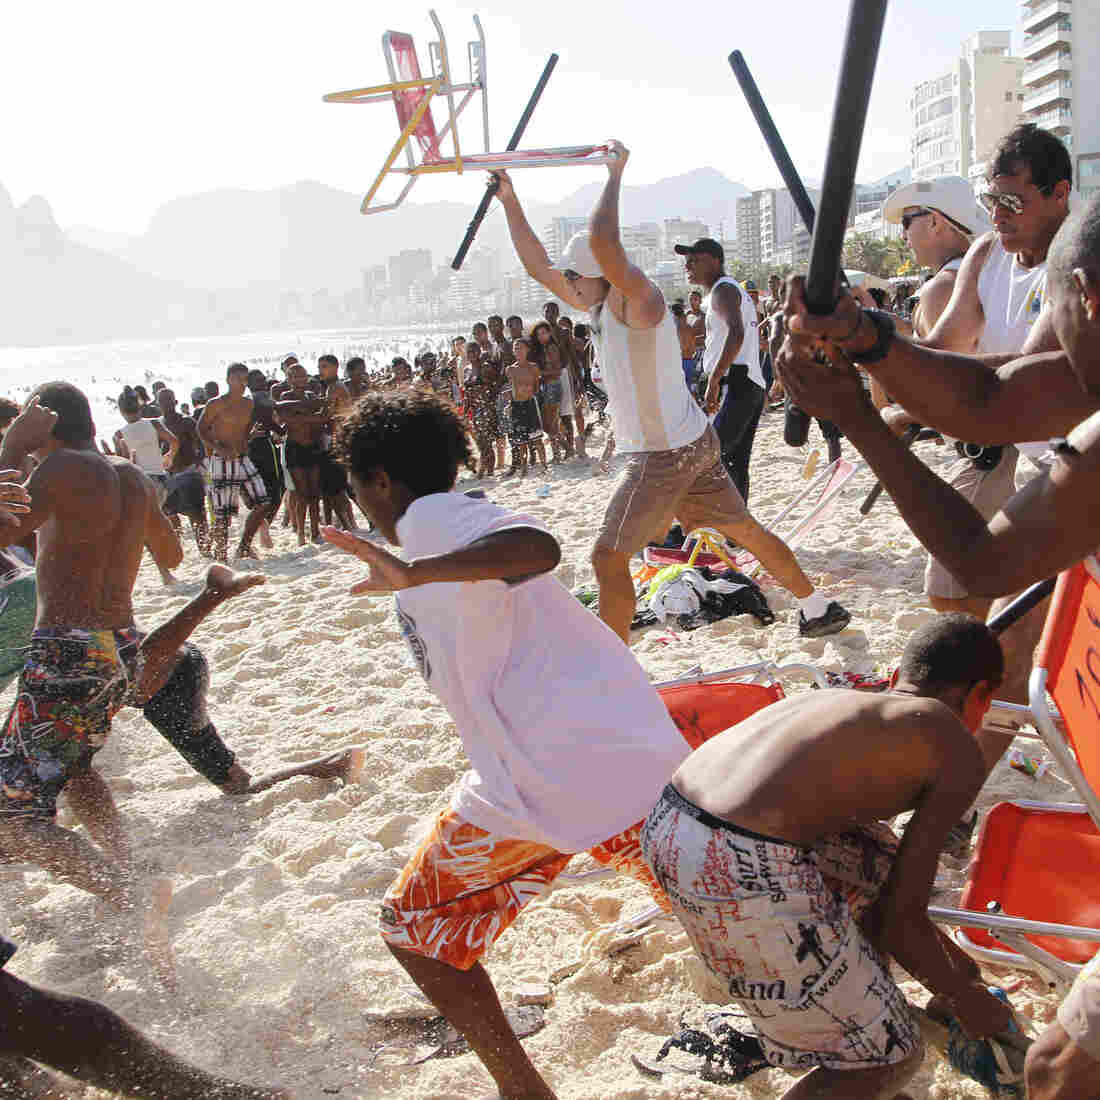 Swarming Thieves Wreak Havoc On Famed Rio Beaches